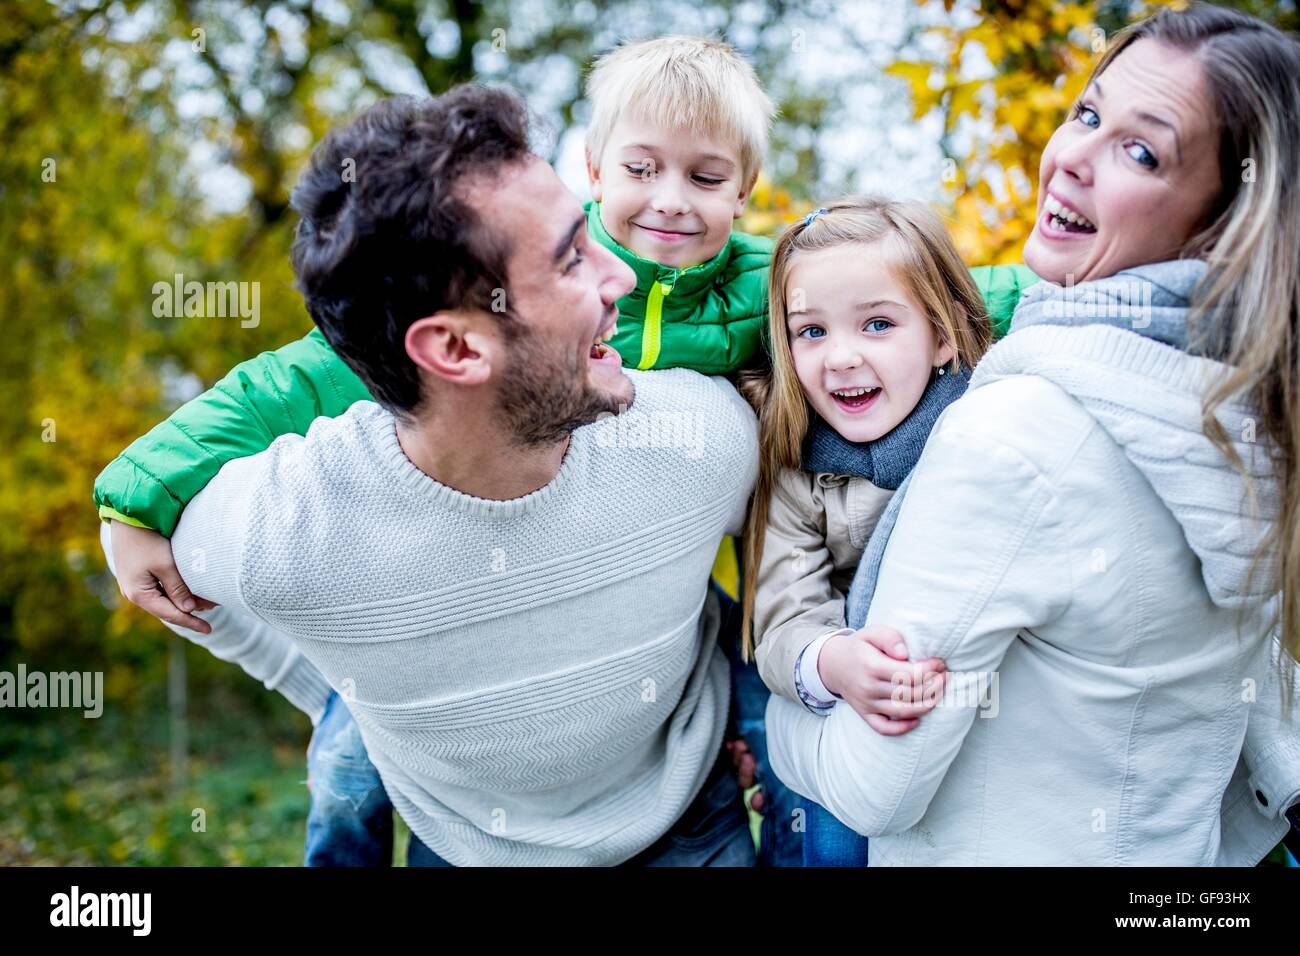 MODEL RELEASED. Parents carrying their children in autumn, laughing. - Stock Image